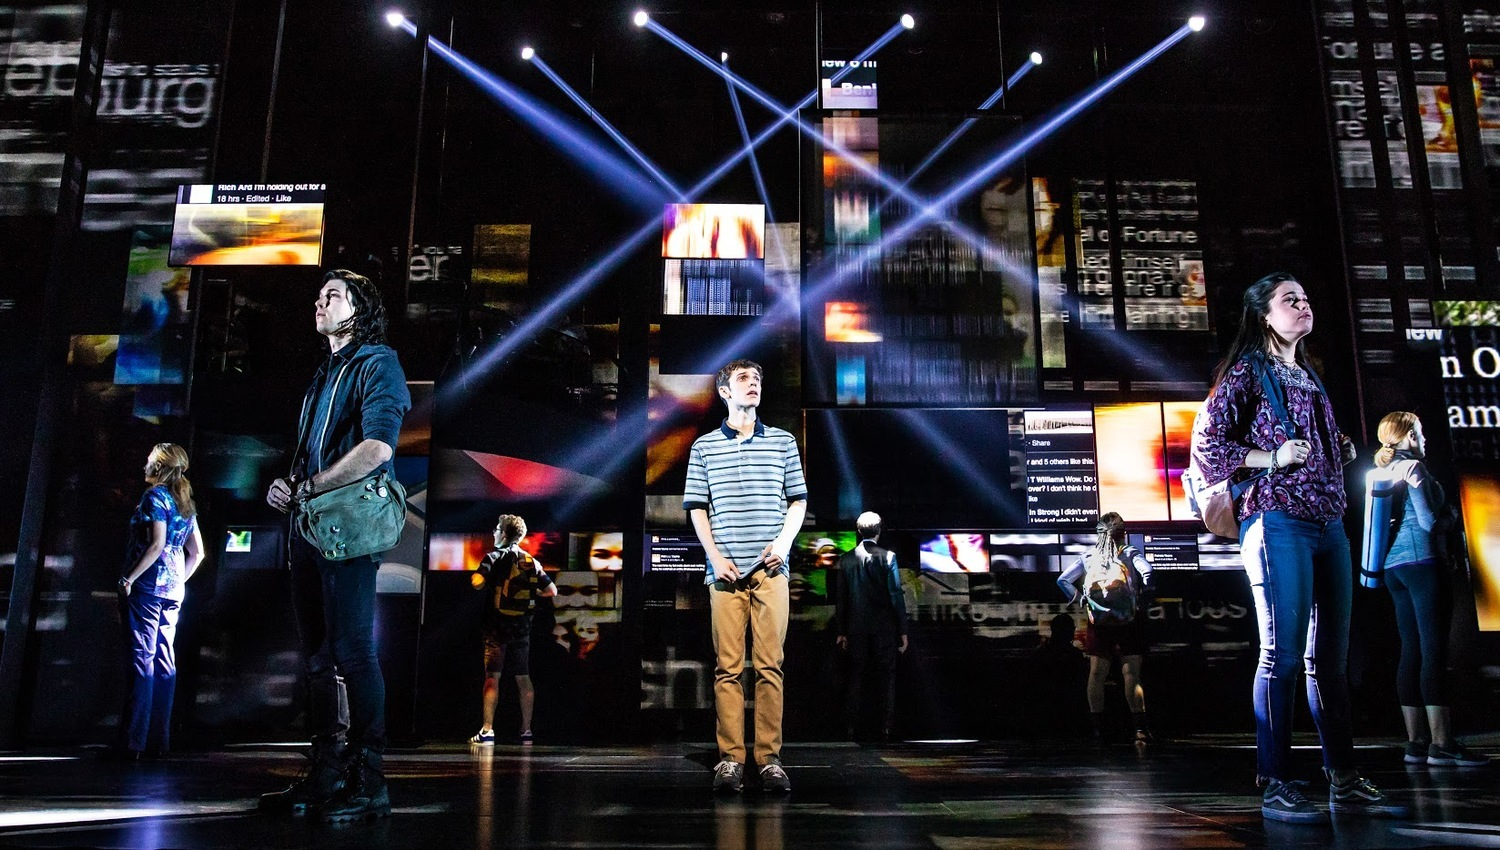 BWW Review: Audience Taken On An Emotional Roller-Coaster Ride by Superlative DEAR EVAN HANSEN at the Connor Palace